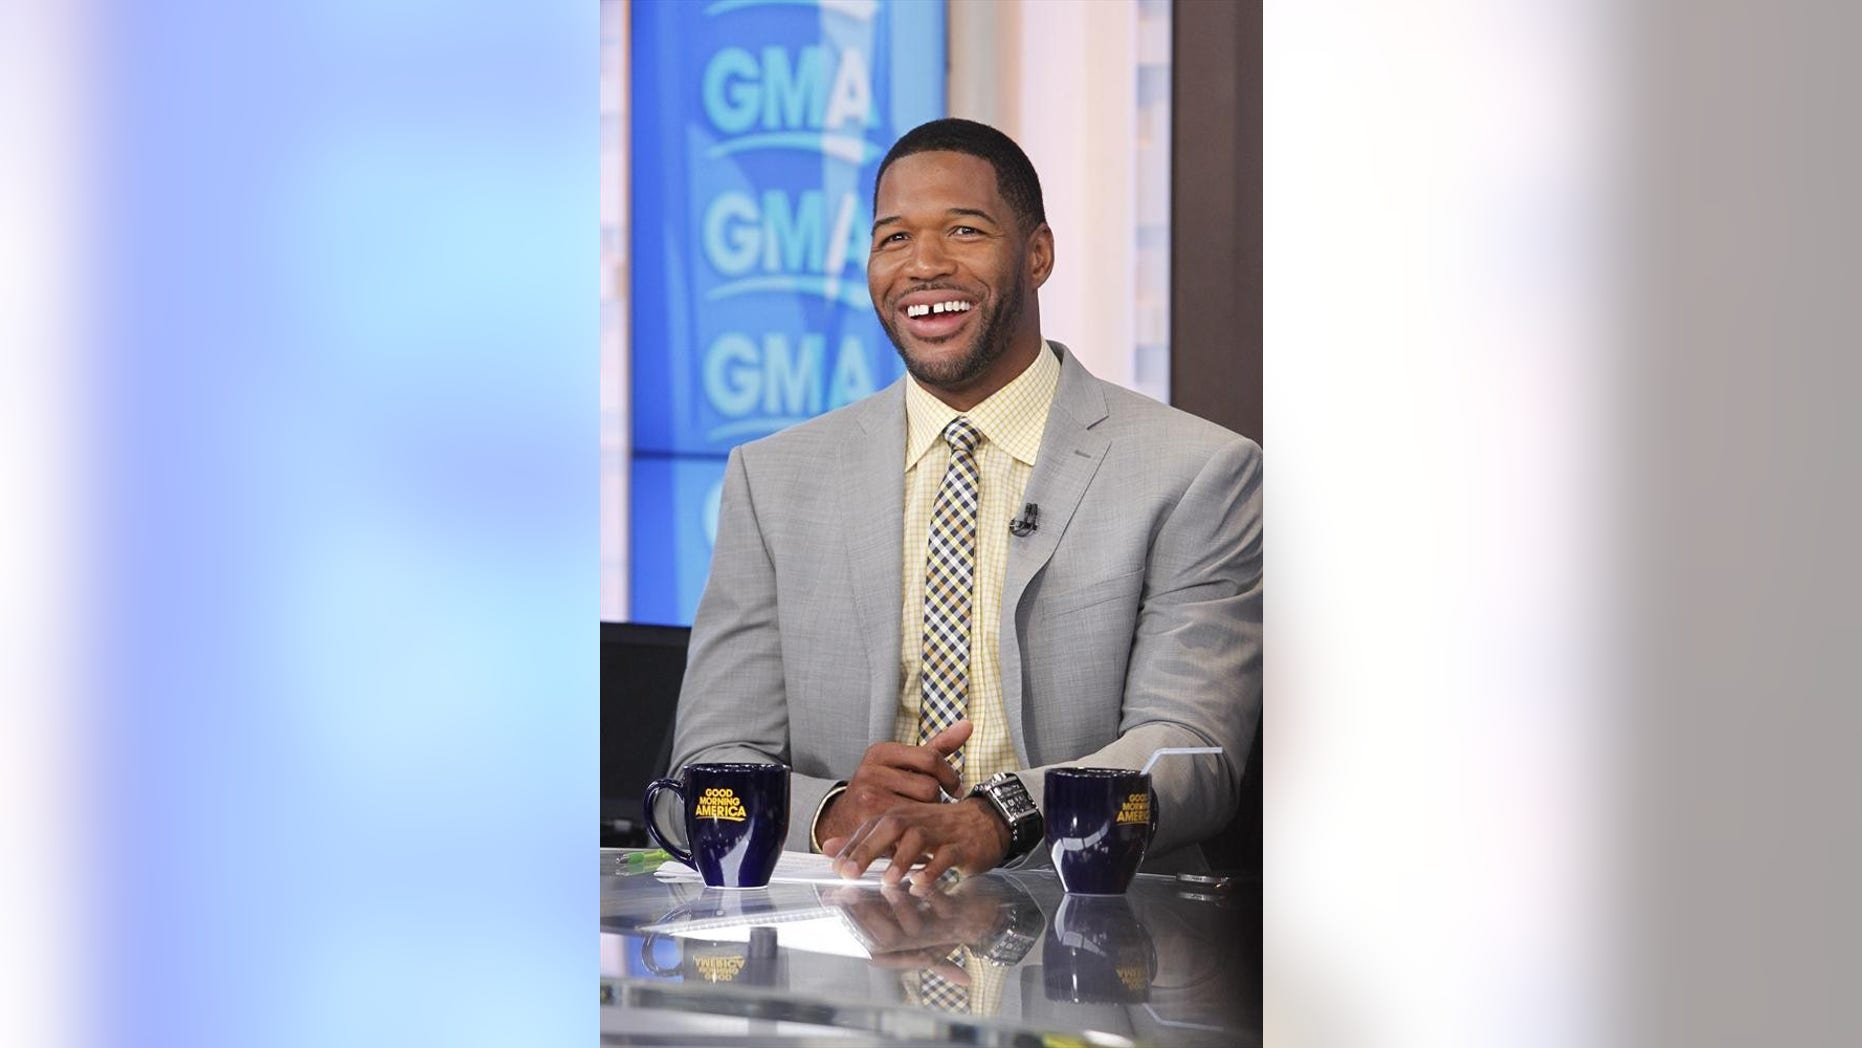 """GOOD MORNING AMERICA - Michael Strahan on """"Good Morning America,"""" 6/24/14, airing on the ABC Television Network.   (ABC/Lou Rocco) MICHAEL STRAHAN"""